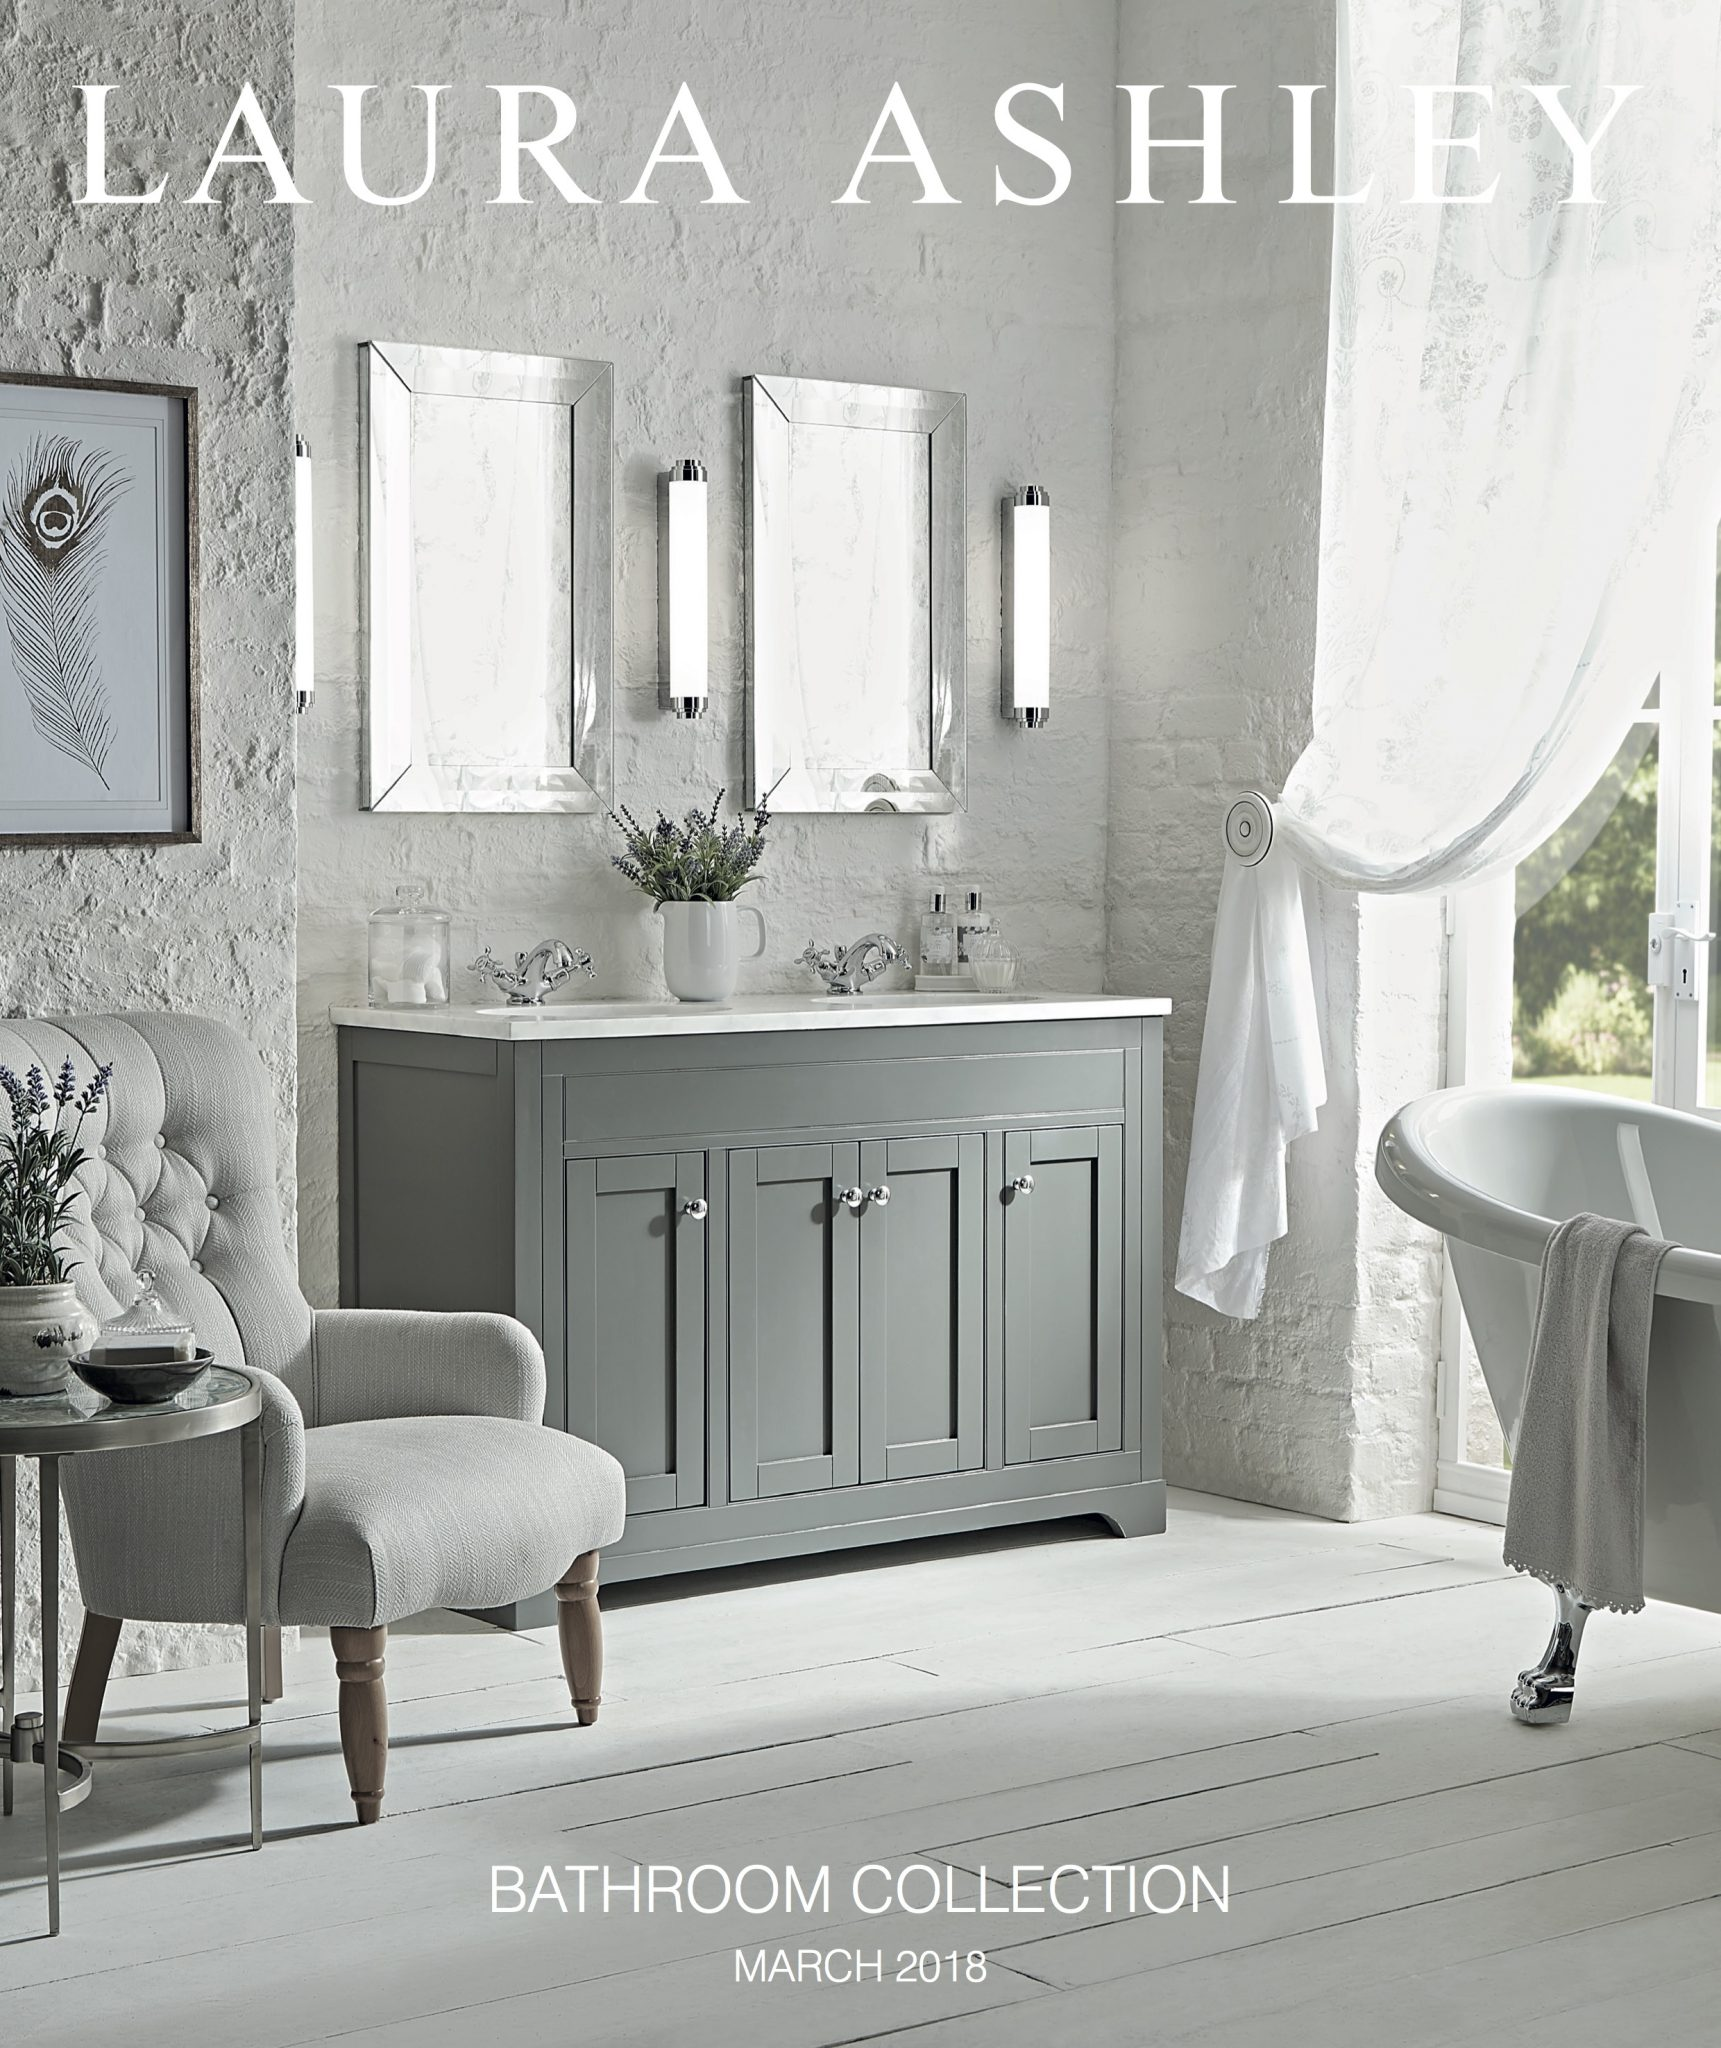 Prime Double Delight Laura Ashley Bathroom Collections Beautiful Complete Home Design Collection Papxelindsey Bellcom